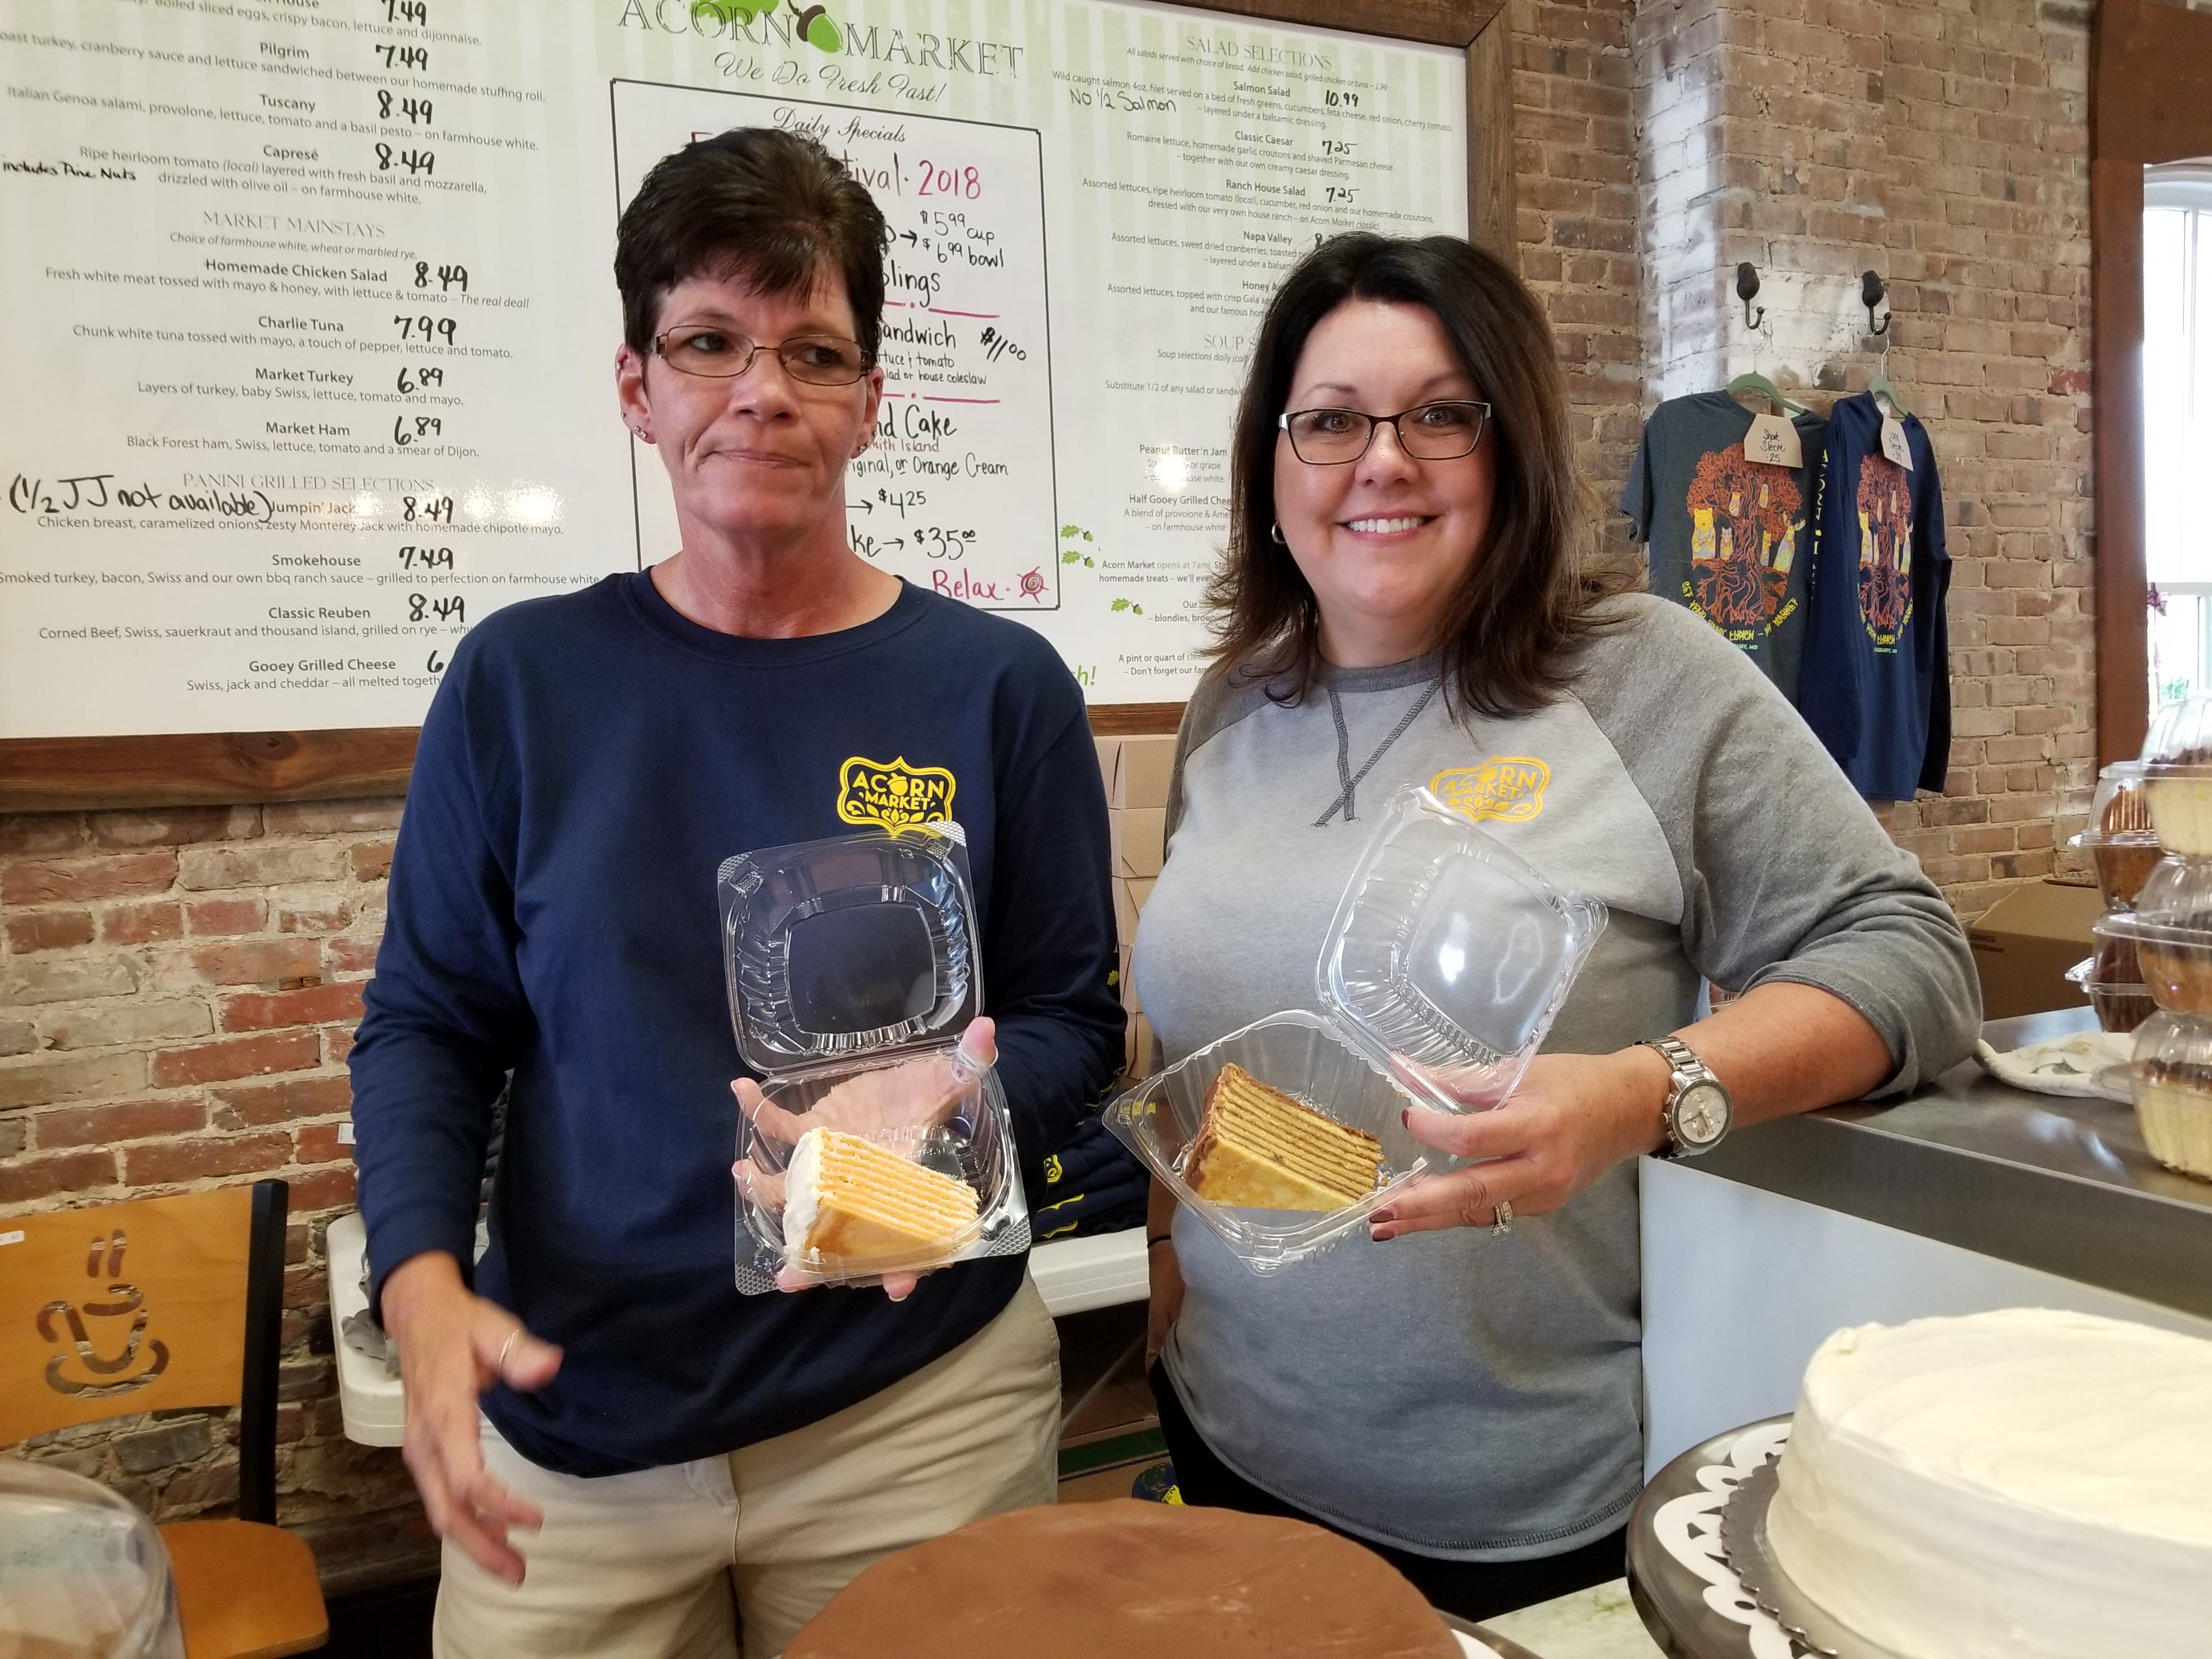 Tina Lee (left) and Christine Braugler, owner of Acorn Market in Salisbury, Maryland, show off Smith Island cakes they are selling at the National Folk Festival on Sept. 8, 2018.